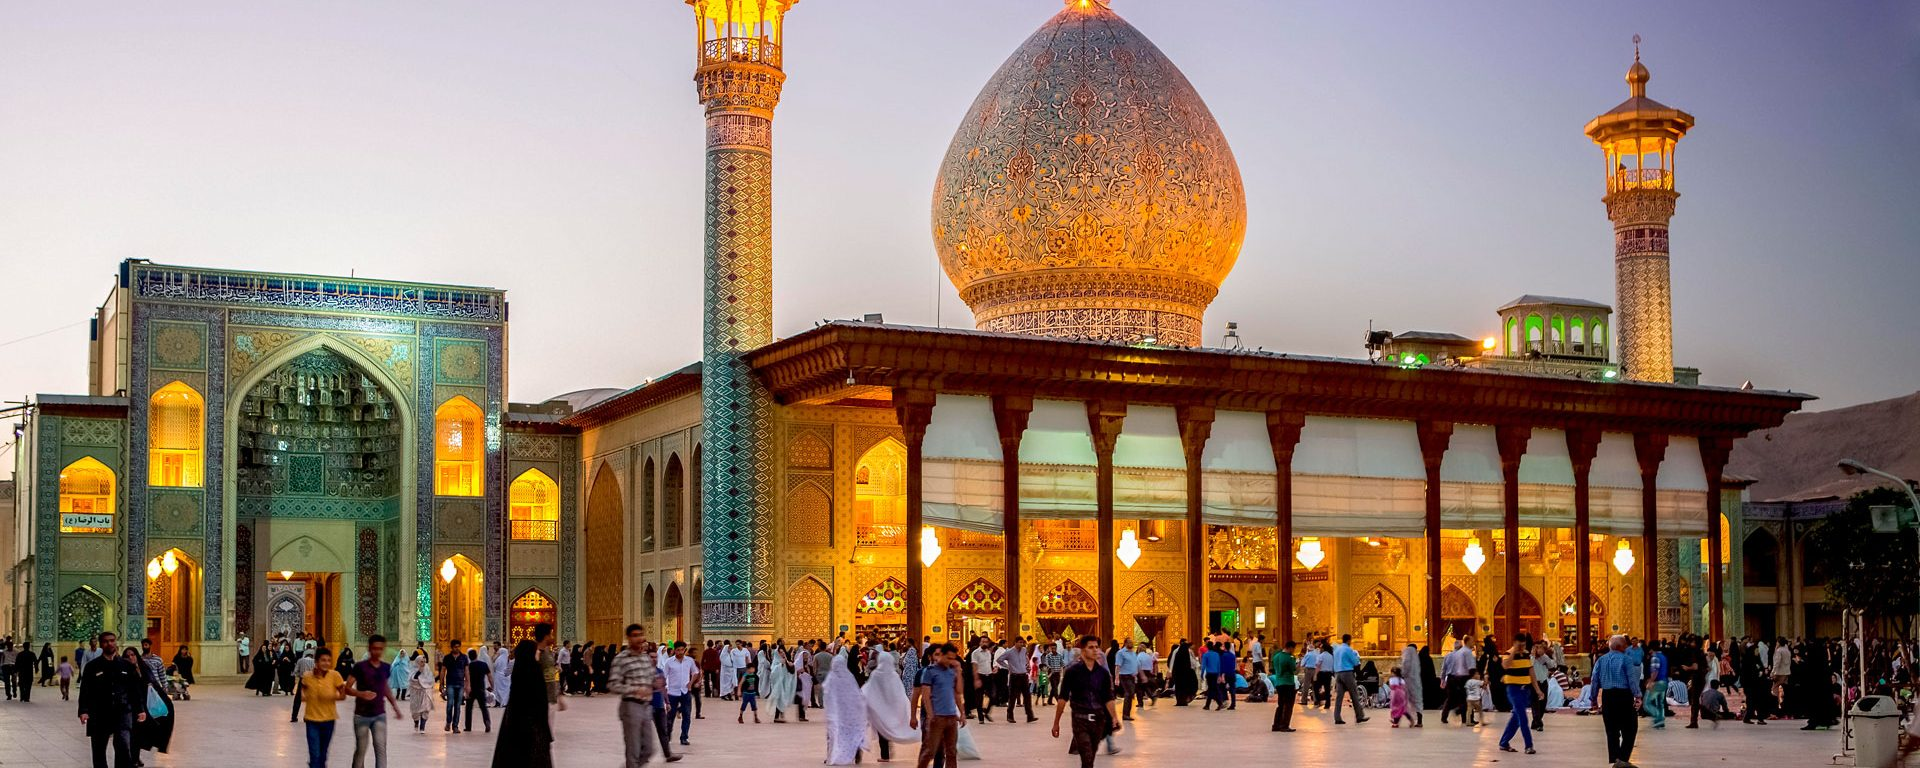 Shah-e Cheragh Sanctuary at sunset, Shiraz, Iran